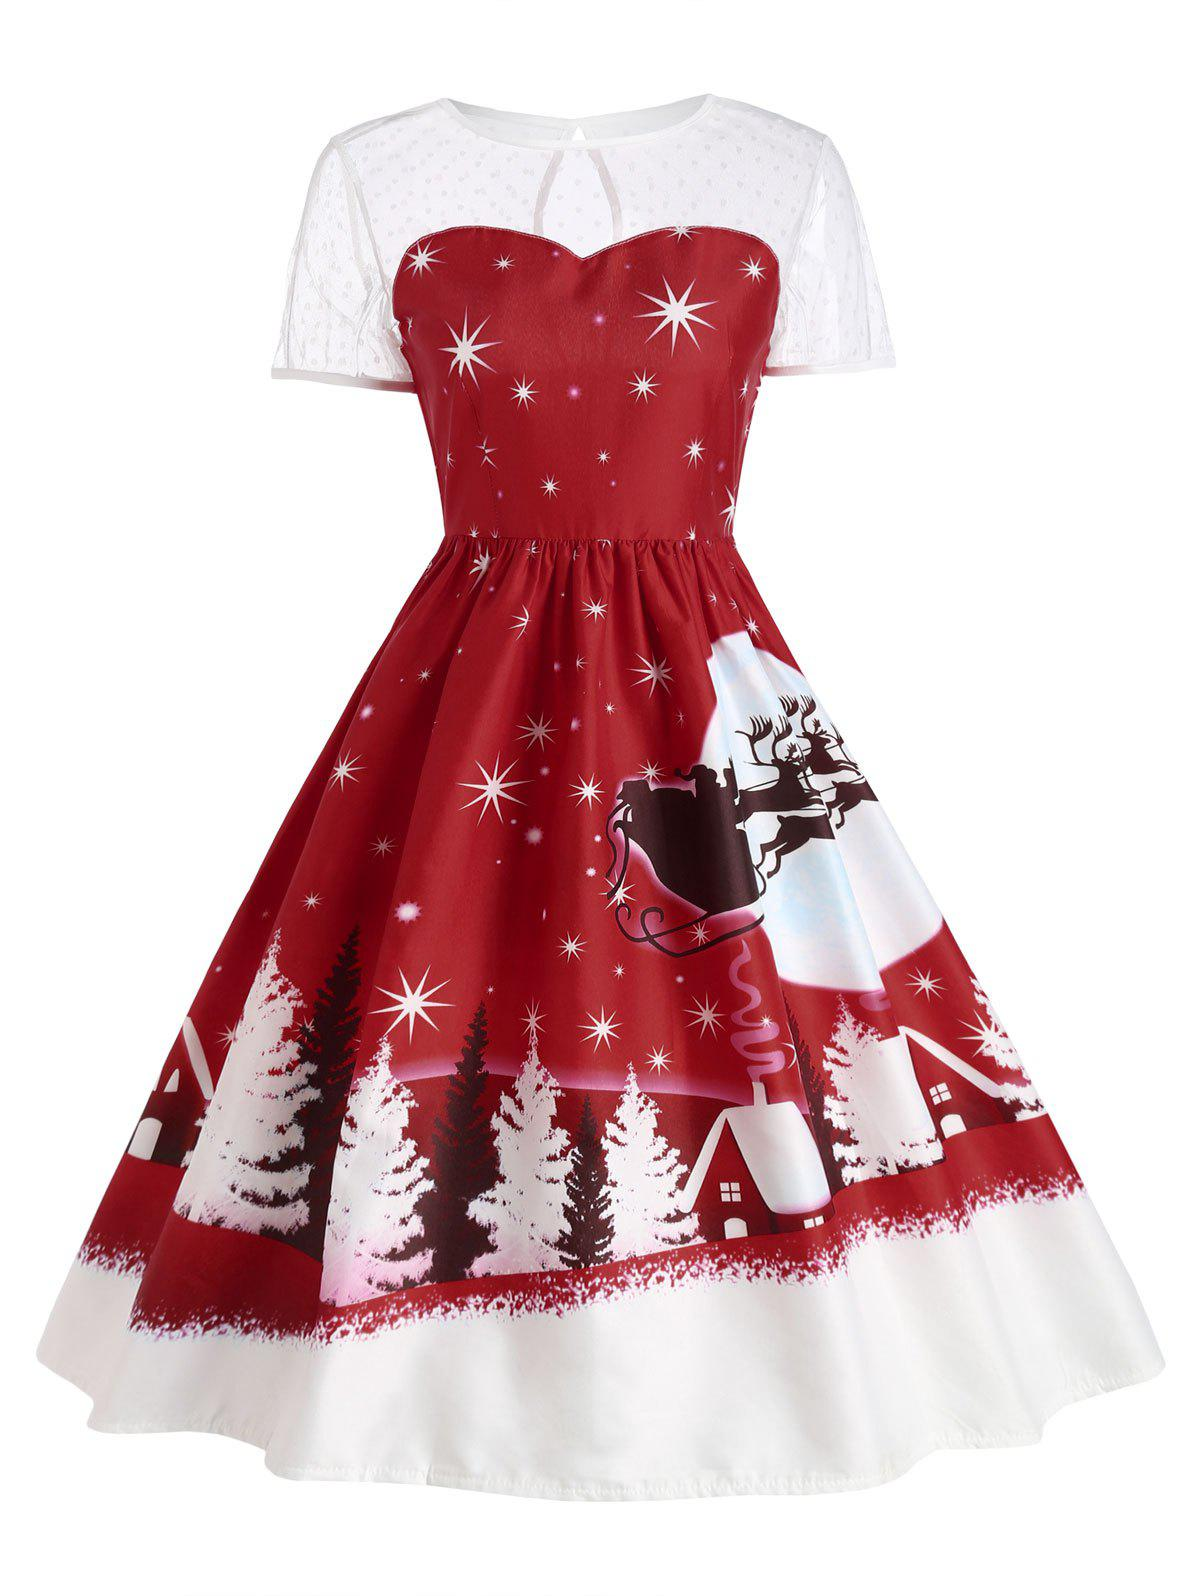 Santa Claus Deer Vintage Christmas DressWOMEN<br><br>Size: 2XL; Color: DARK RED; Style: Cute; Material: Polyester; Silhouette: Ball Gown; Dresses Length: Mid-Calf; Neckline: Round Collar; Sleeve Length: Short Sleeves; Pattern Type: Print; With Belt: No; Season: Fall,Winter; Weight: 0.2400kg; Package Contents: 1 x Dress;